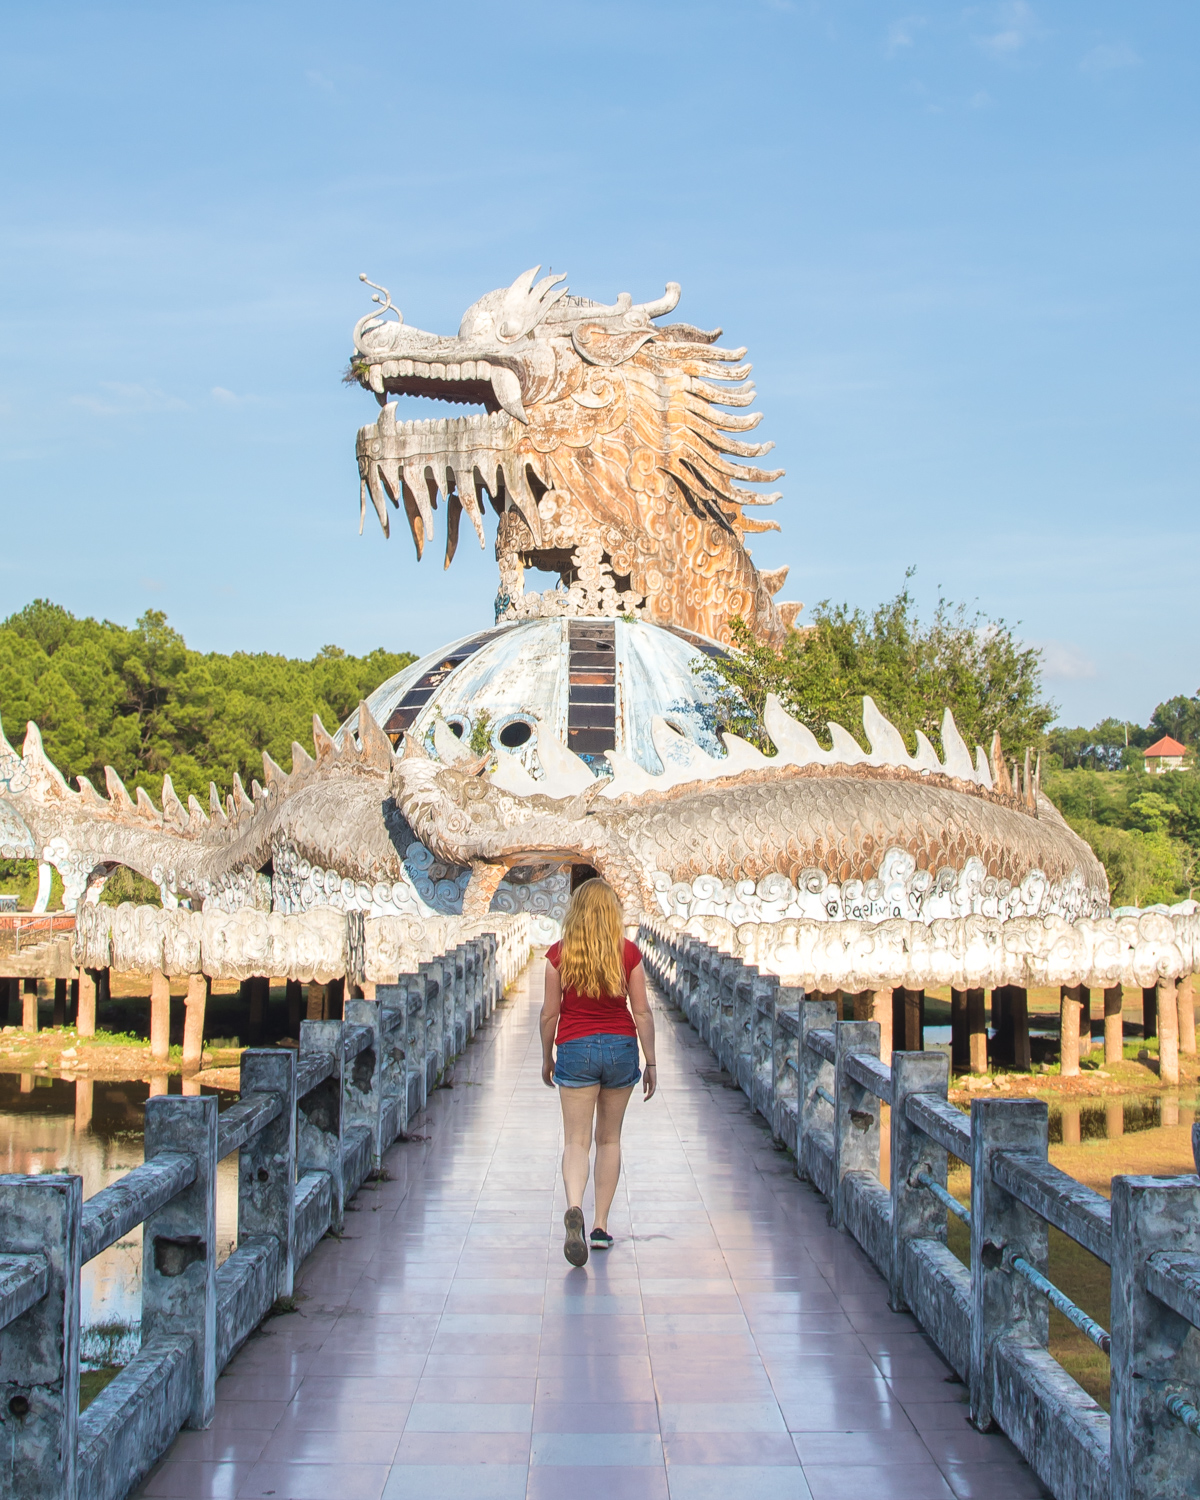 The abandoned water park in Hue